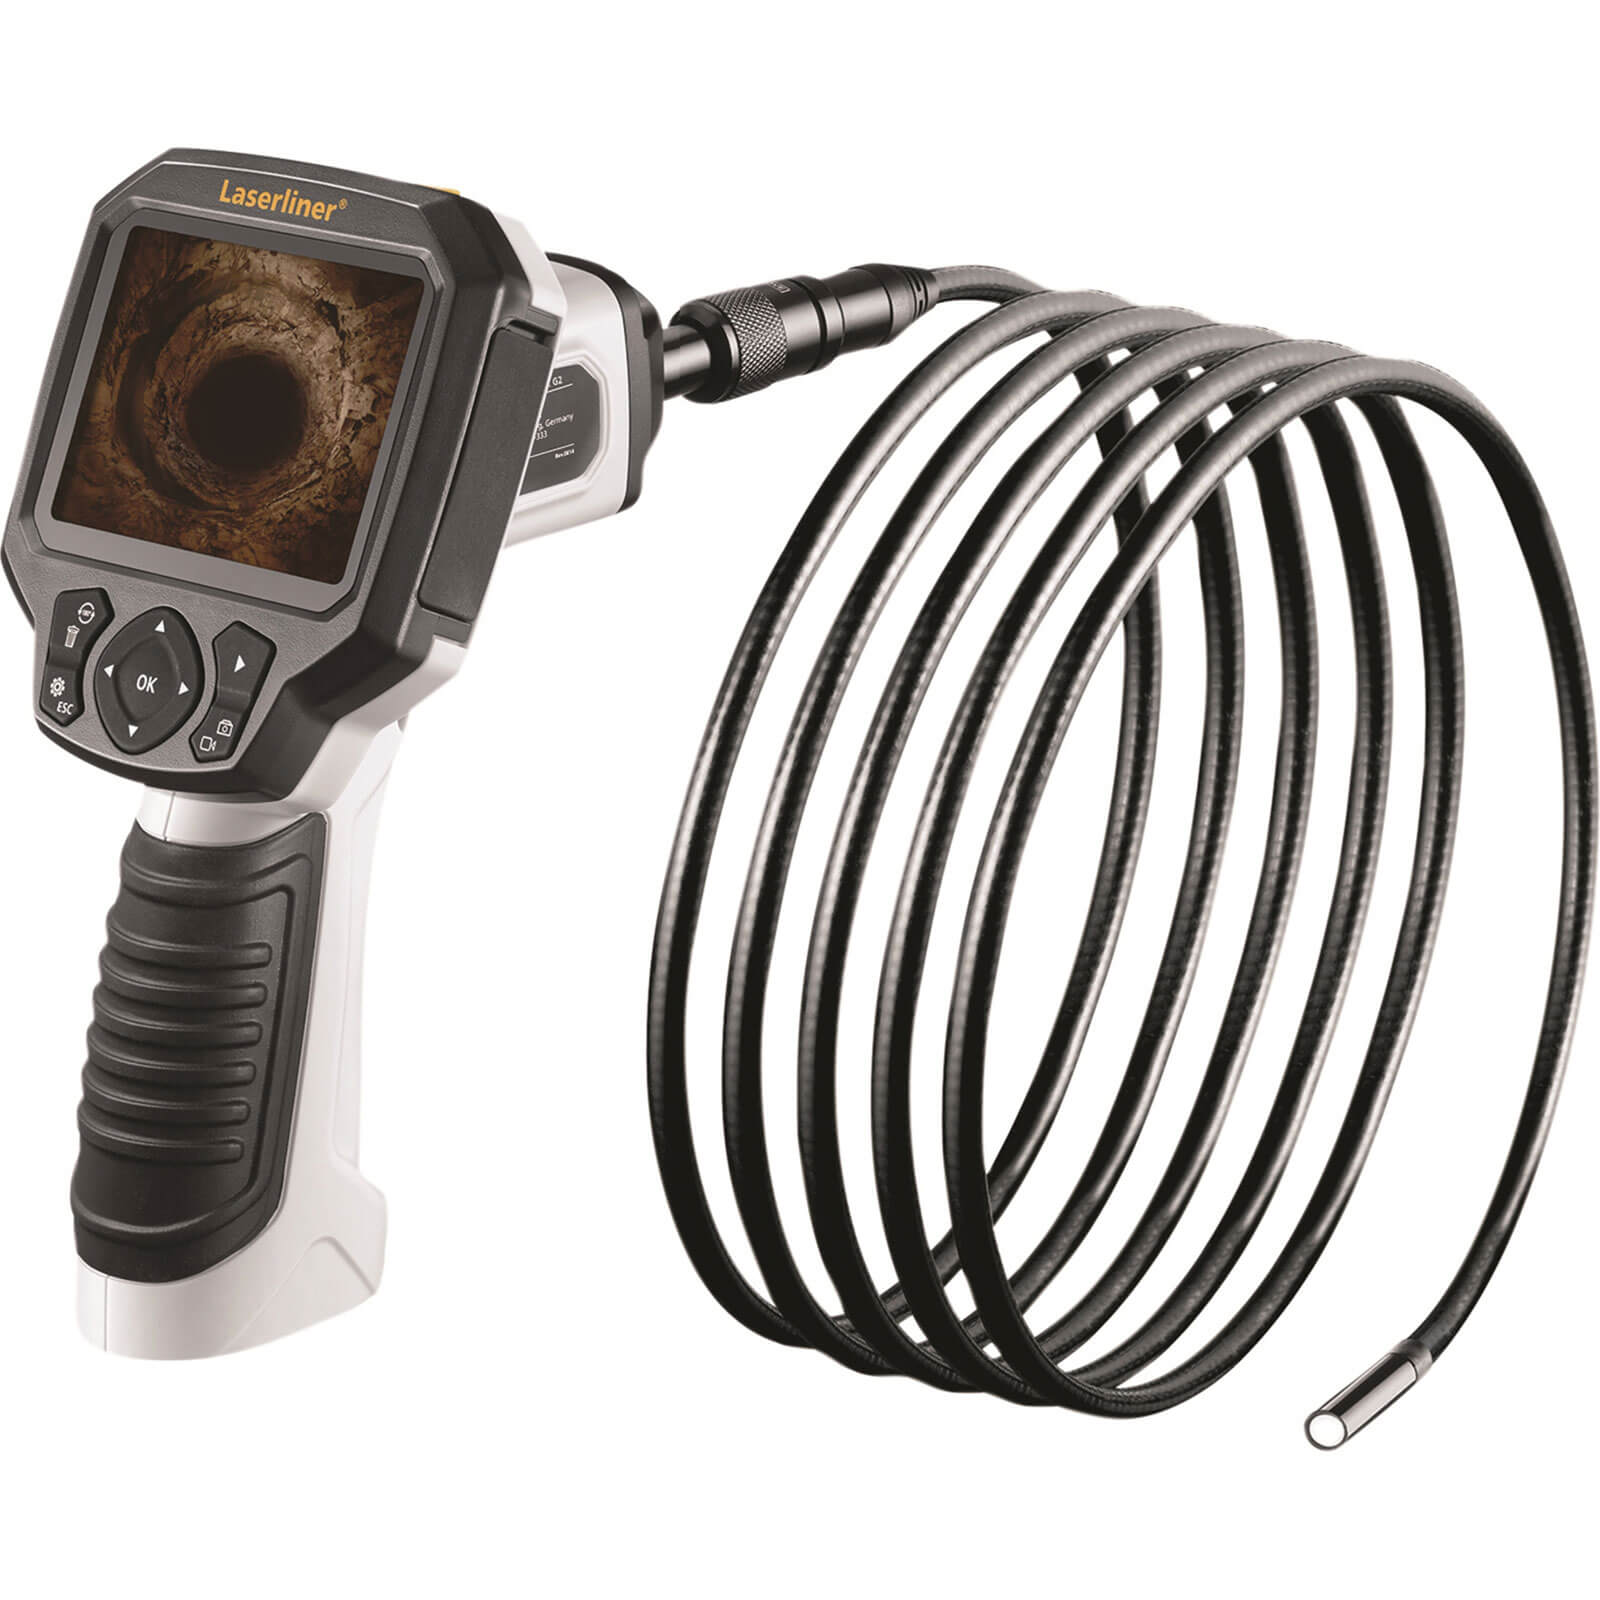 Image of LaserLiner Videoflex G3 Professional Inspection Camera 10 Metre Long